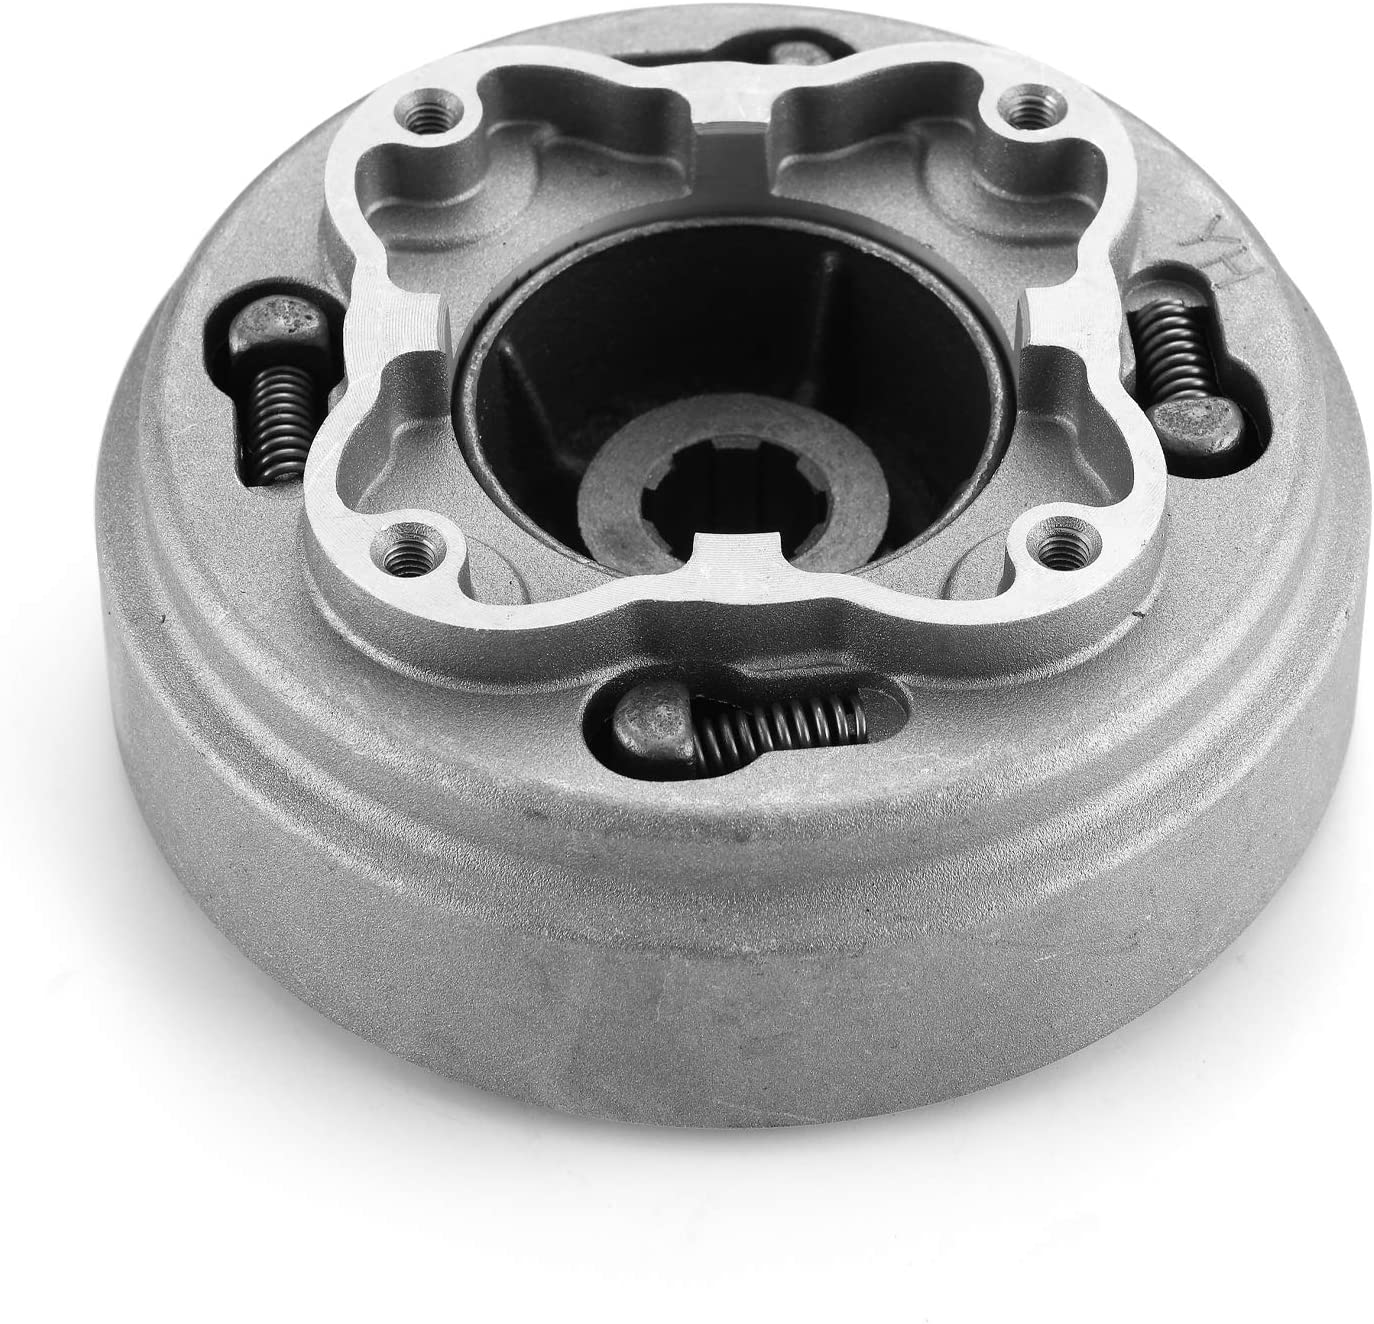 Parts AH Manual Clutch Assembly 18 Teeth For 50cc-125cc Engine ...